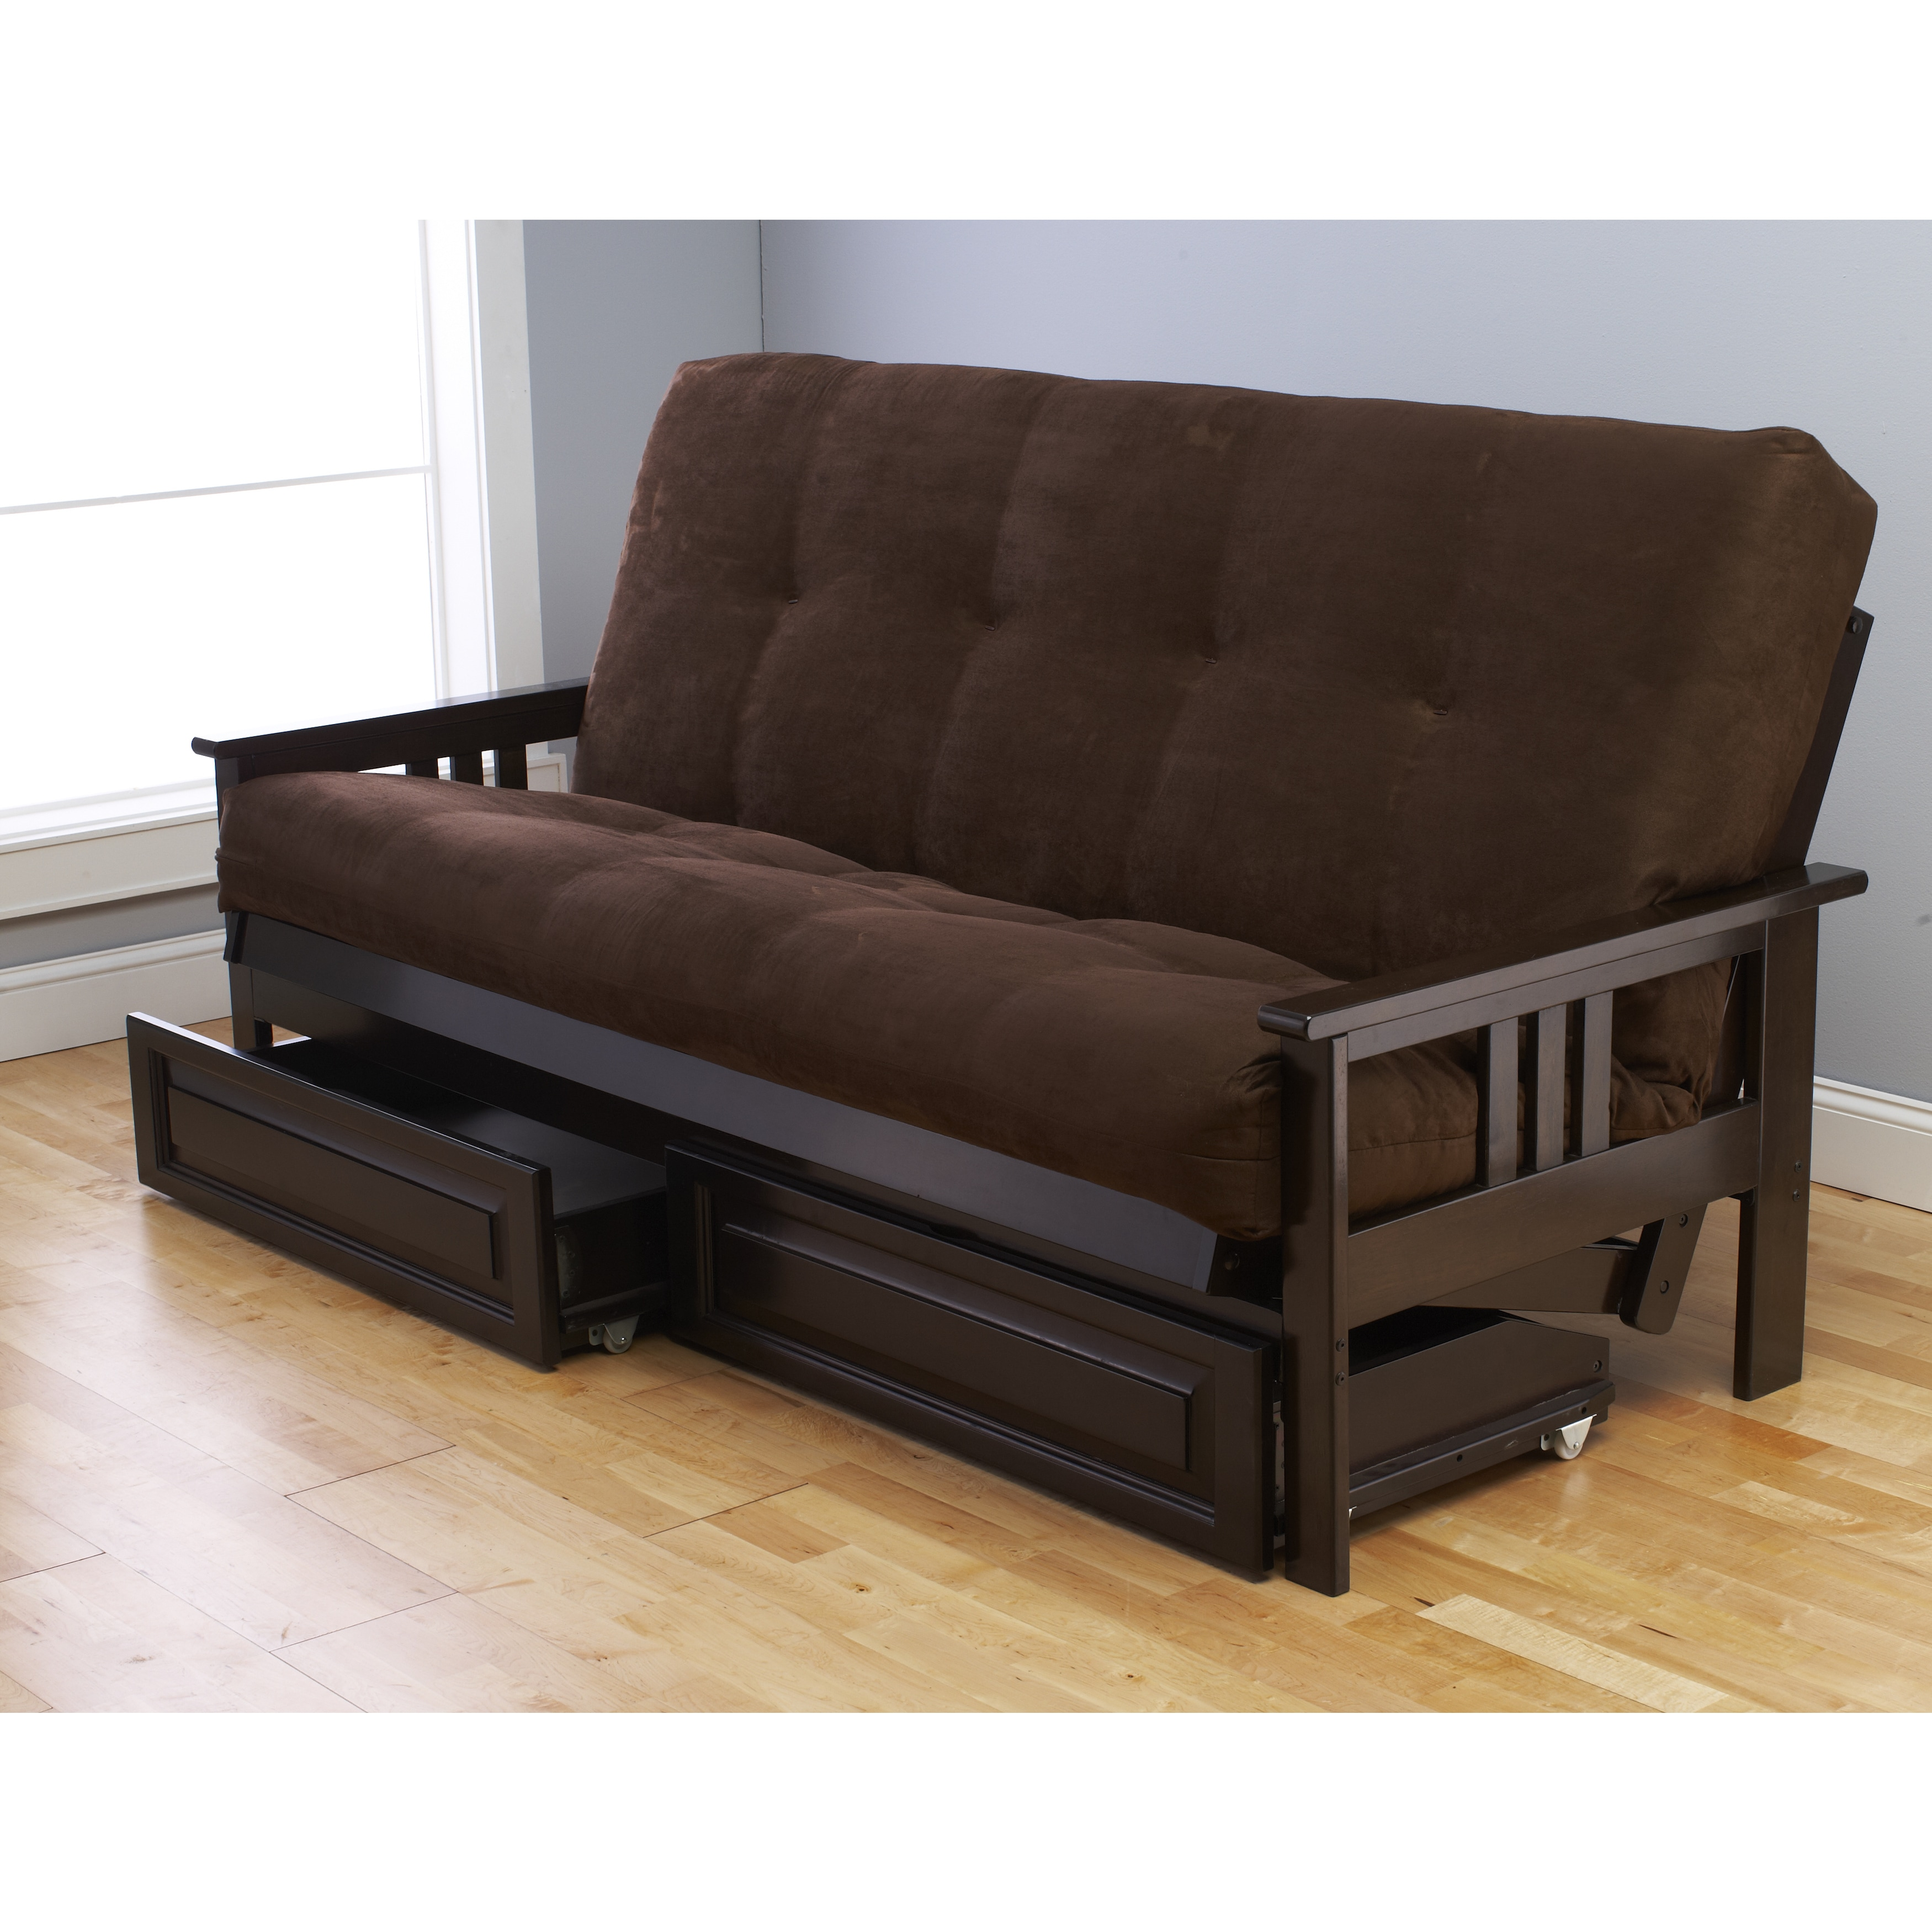 Clay Alder Home Desoto Espresso Full Size Futon With Suede Mattress And Storage Drawers Free Shipping Today Com 10612551